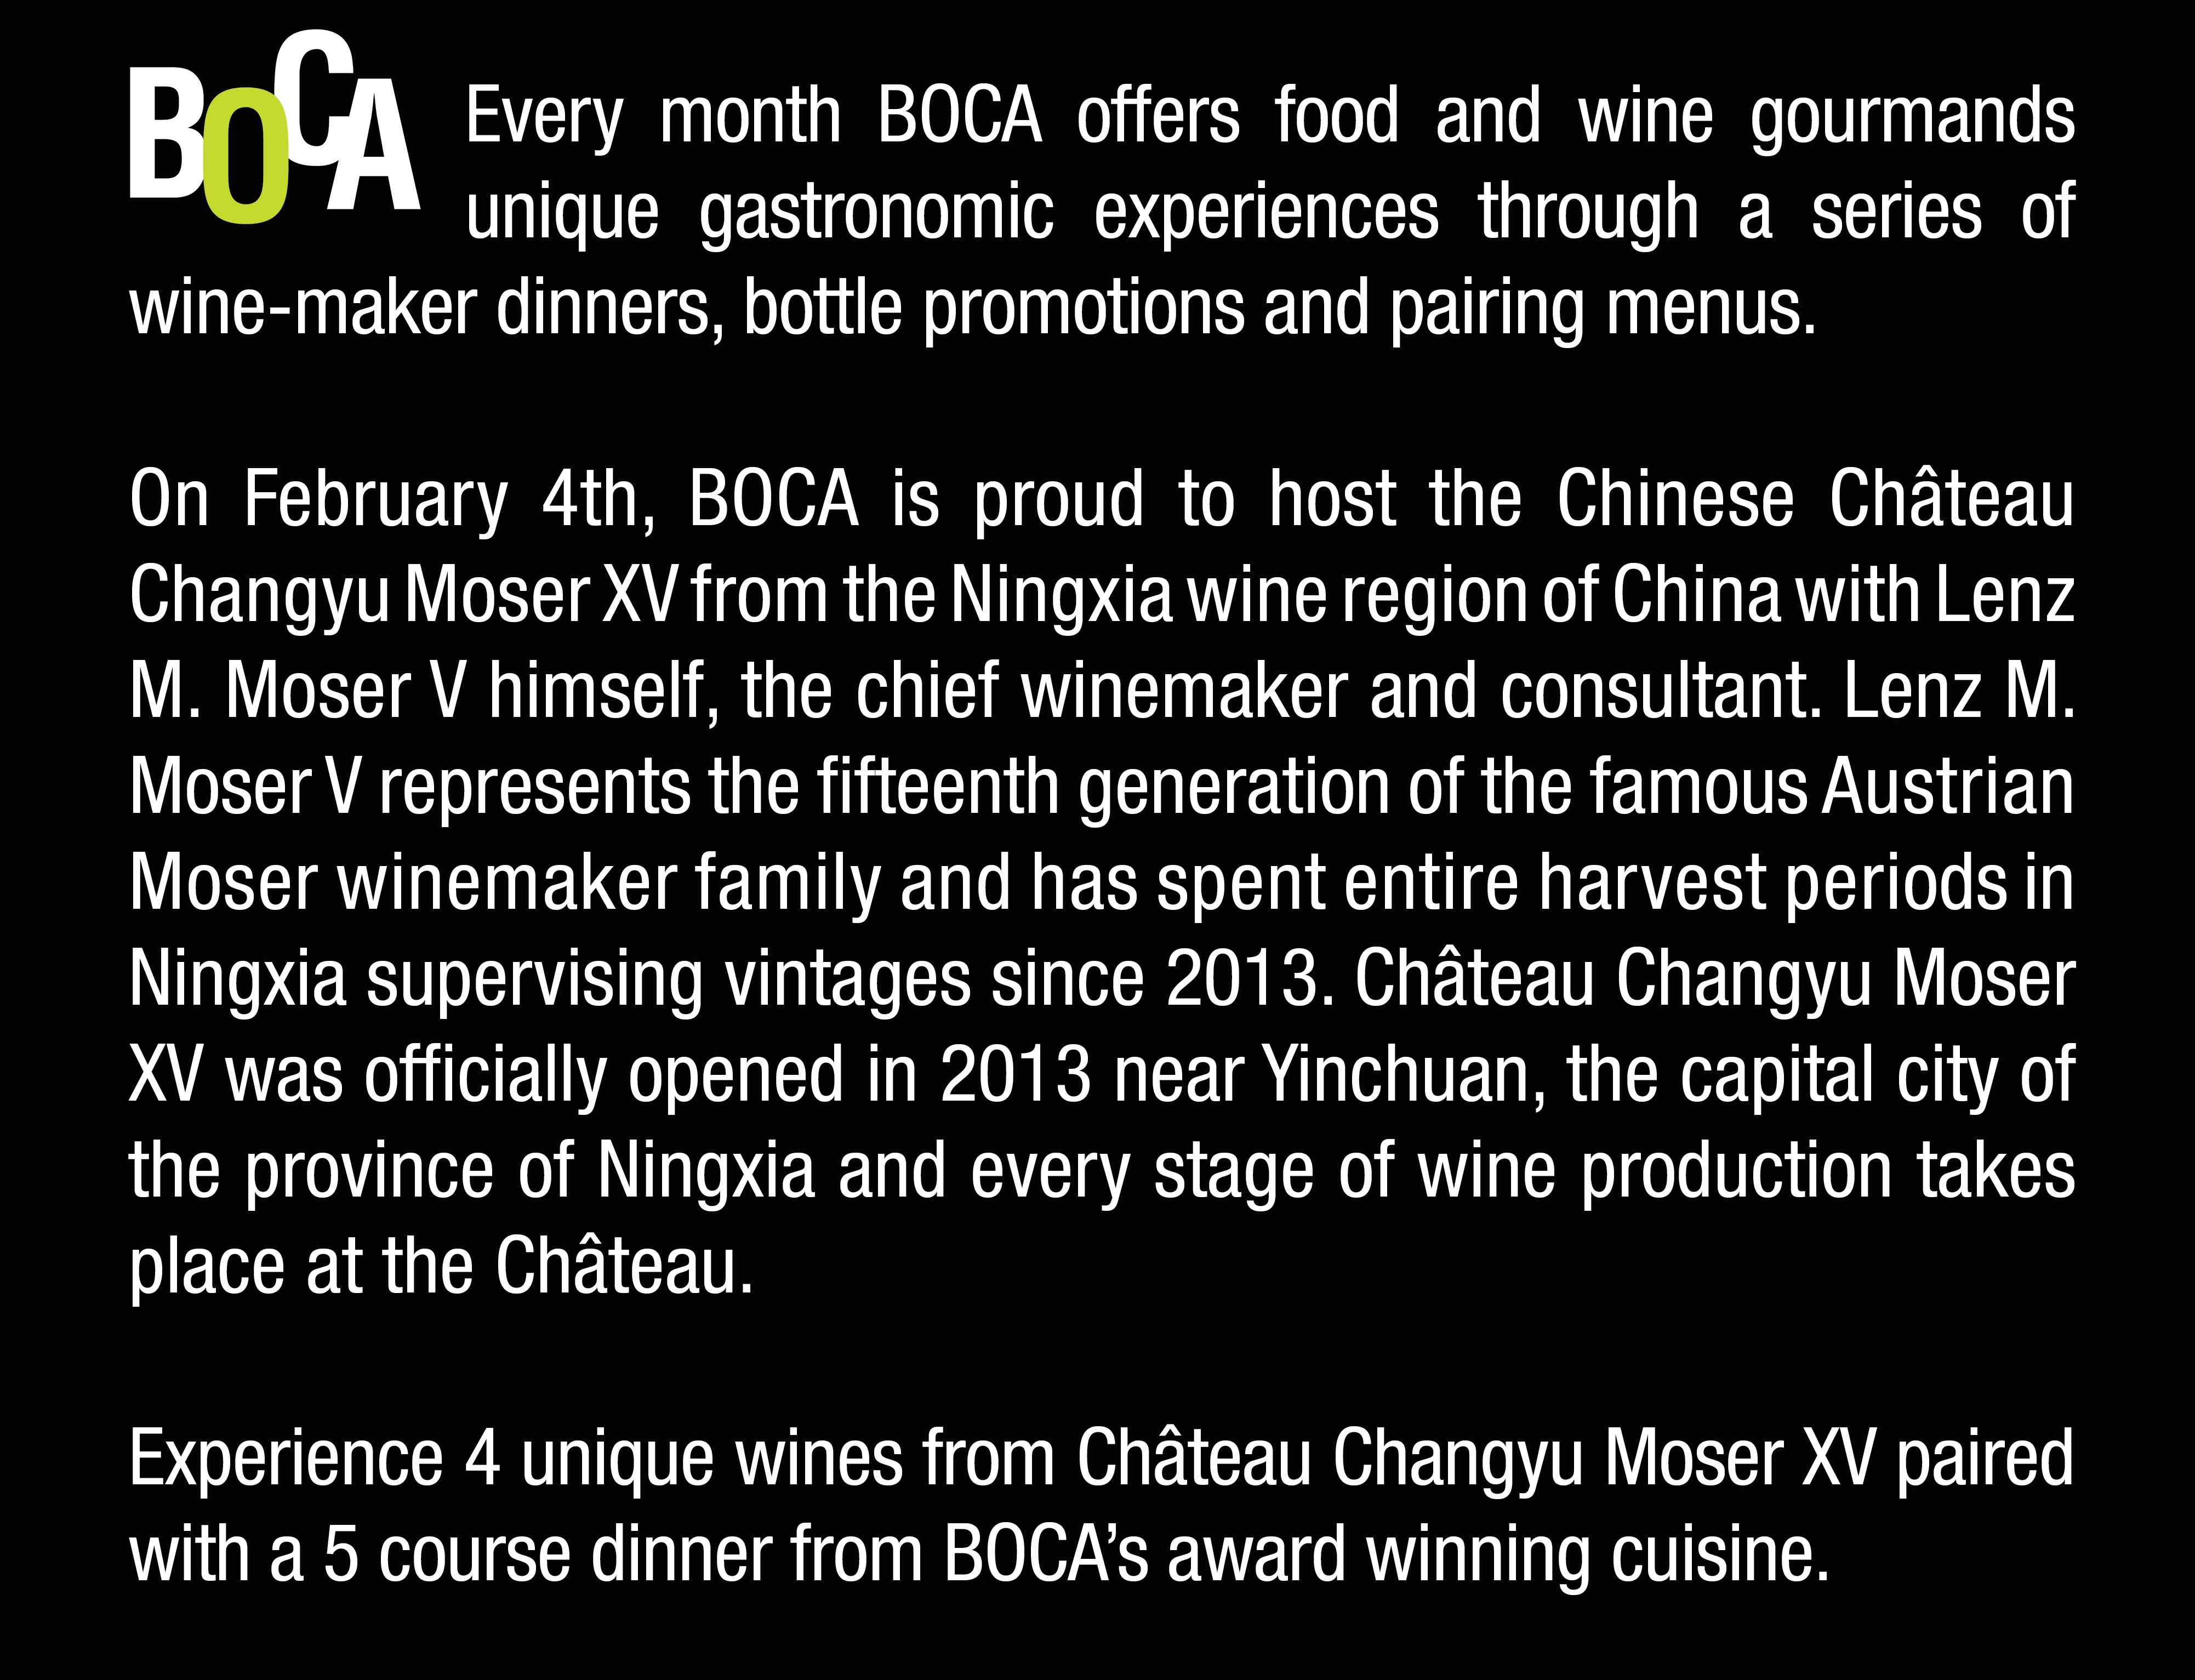 Chateau Changyu 5 course dinner